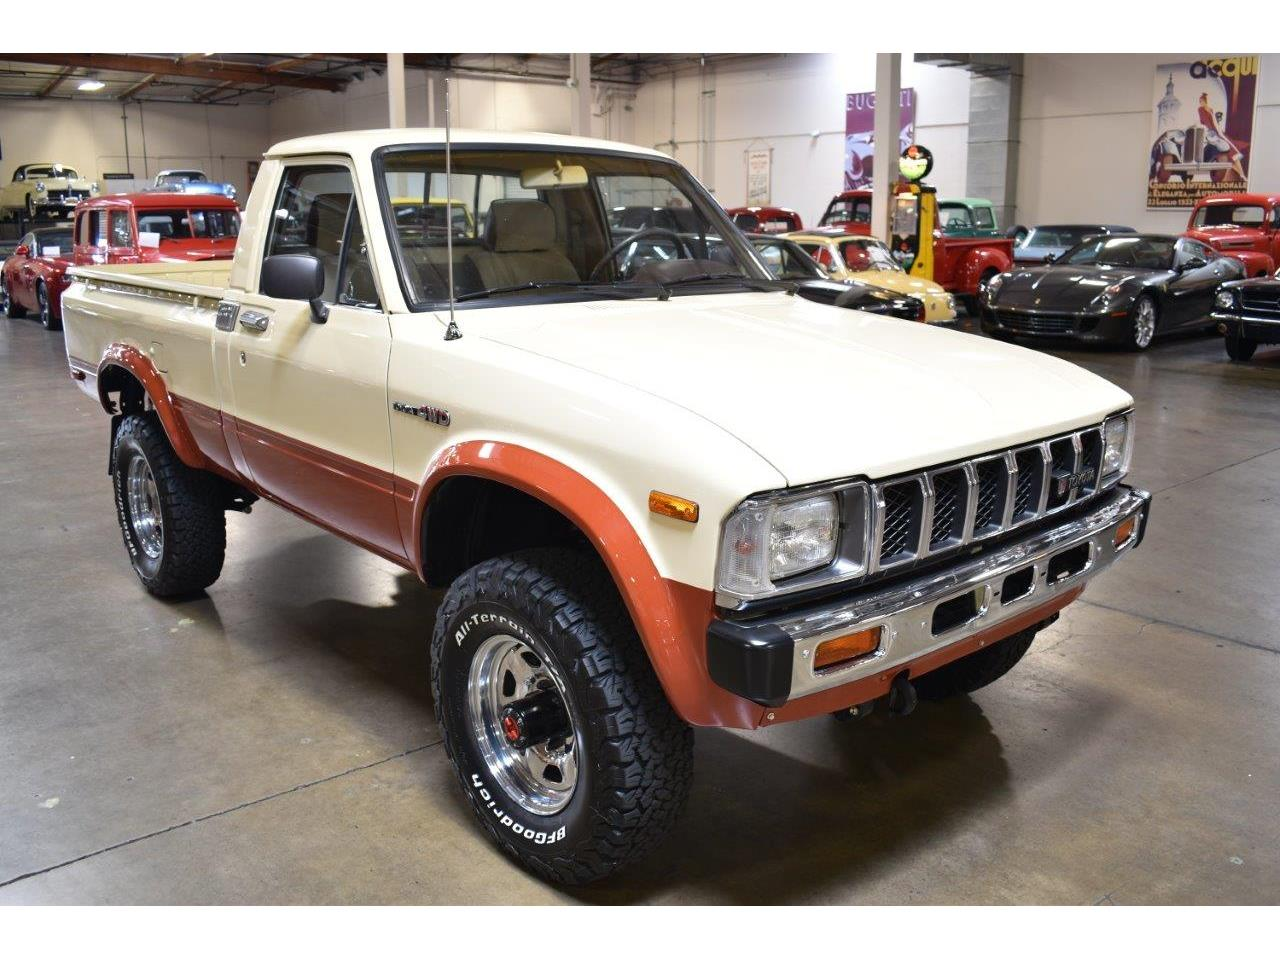 for sale 1983 toyota pickup in costa mesa, california cars - costa mesa, ca at geebo